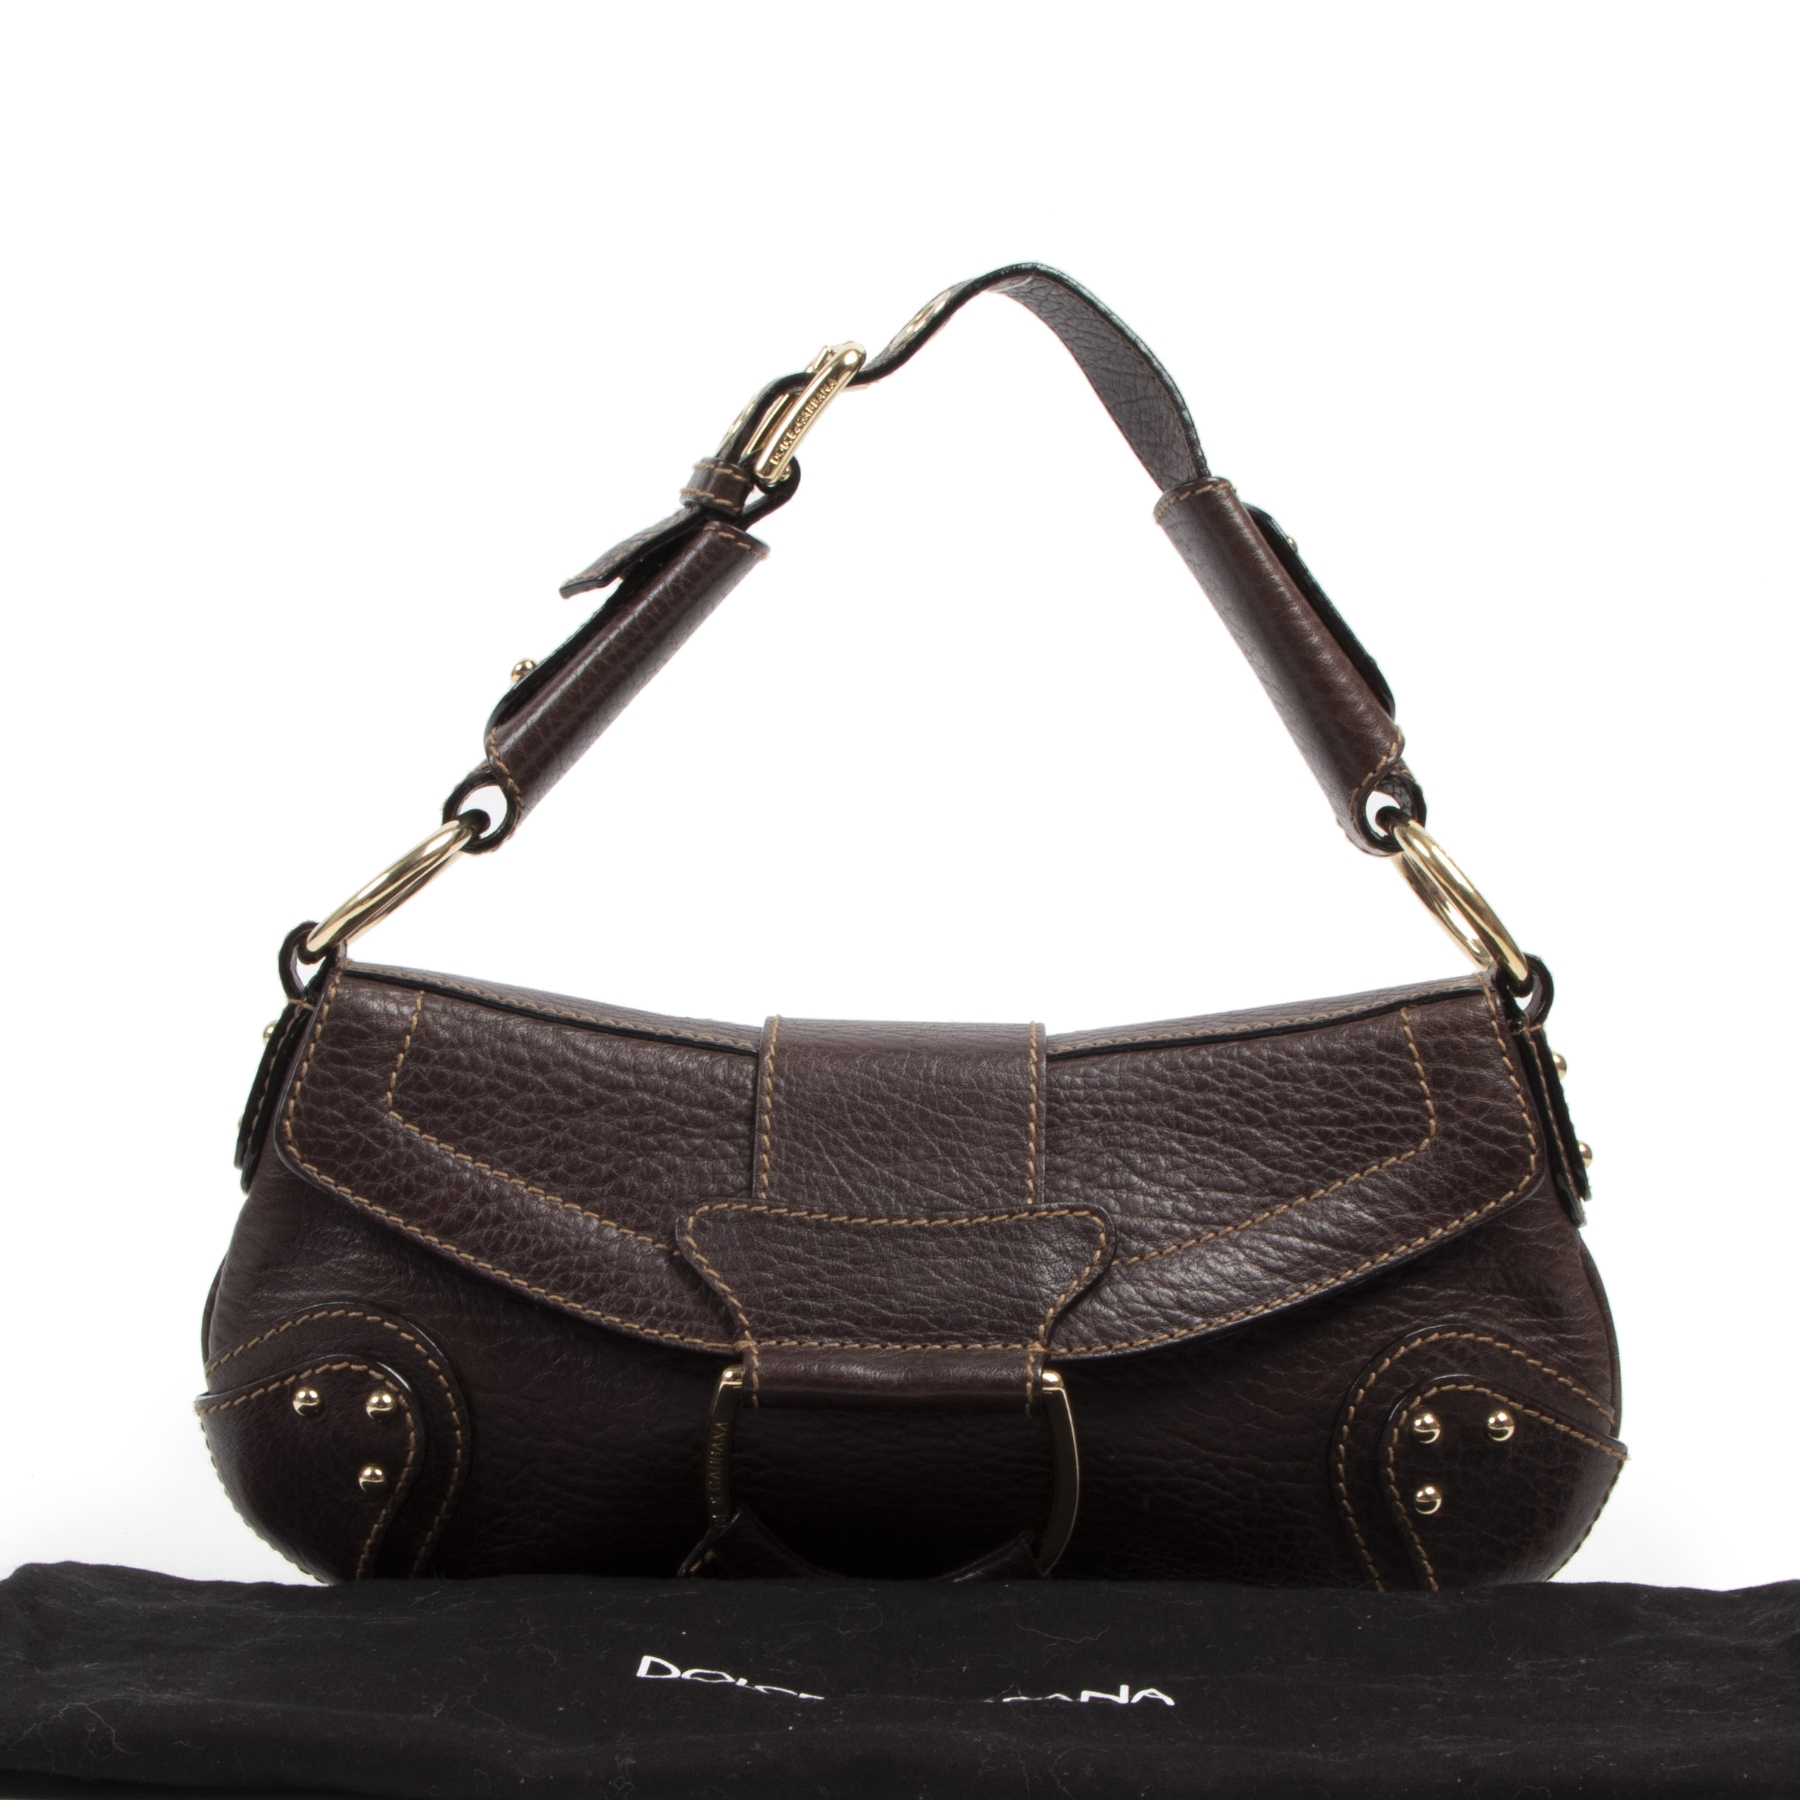 Authentieke tweedehands vintage Dolce & Gabbana D Ring Saddle Brown Leather Shoulder Bag koop online webshop LabelLOV